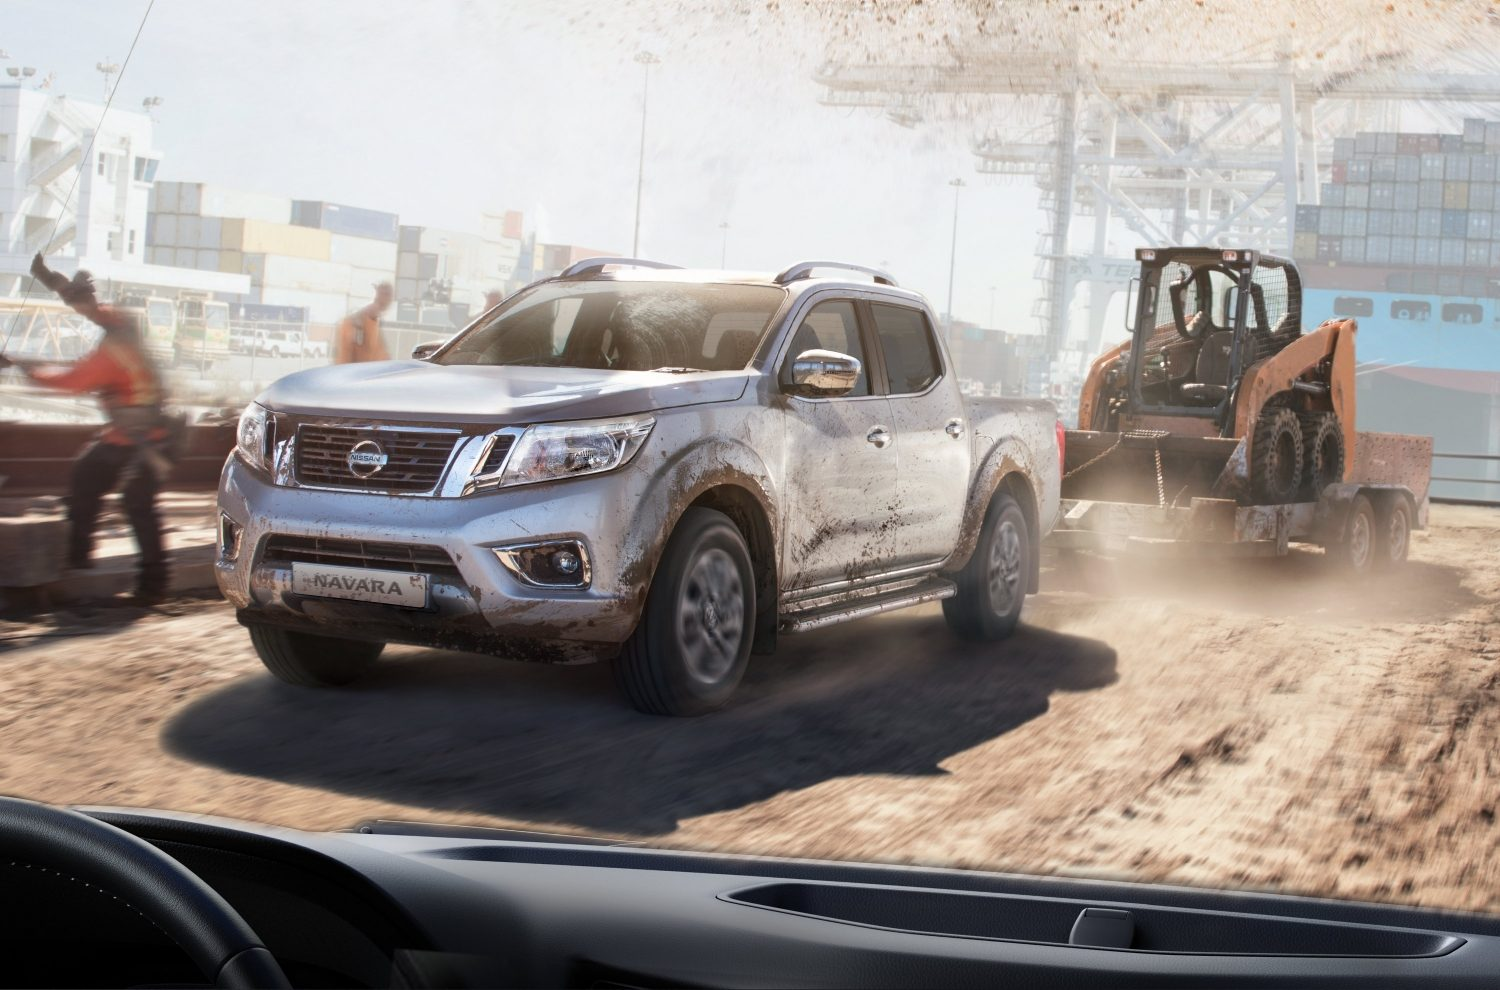 Nissan NAVARA in movimento immagine frontale 3/4 mentre traina un rimorchio